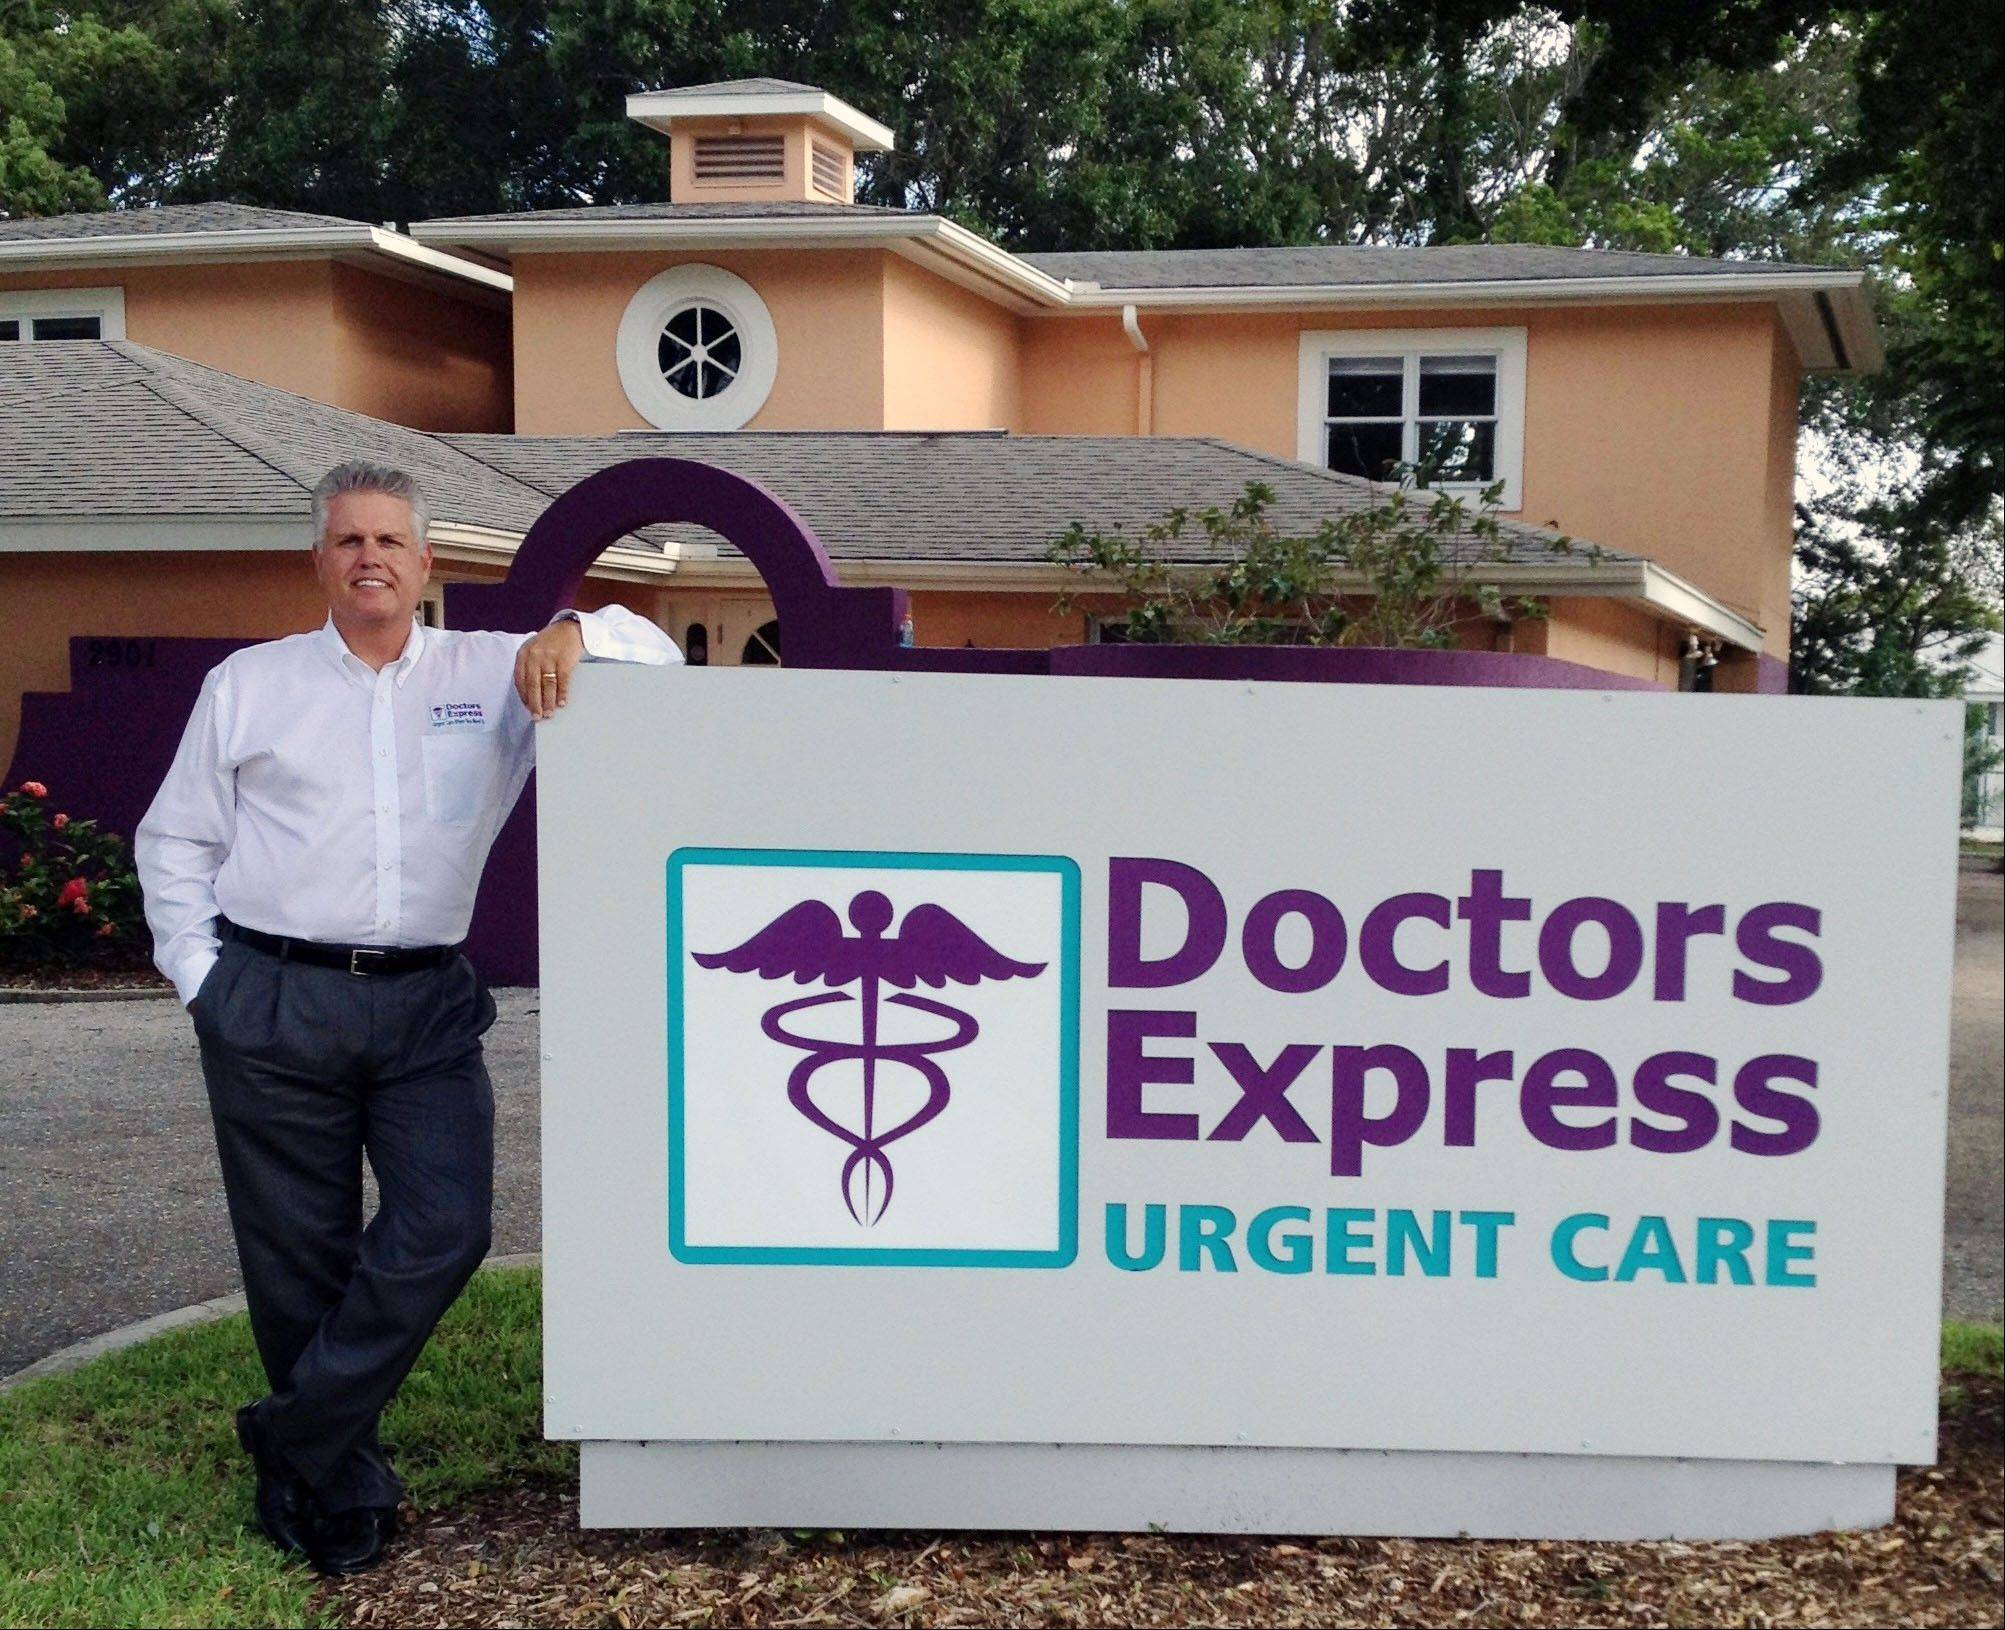 Rick Kimsey stands in front of his franchise, Doctors Express urgent care Facility in Sarasota, Fla. The business came with a concept and a service to sell. All he had to do was get the franchise up and running, and then operate it. However, many first-time buyers like Kimsey are finding it's harder than they expected to buy and run a franchise.